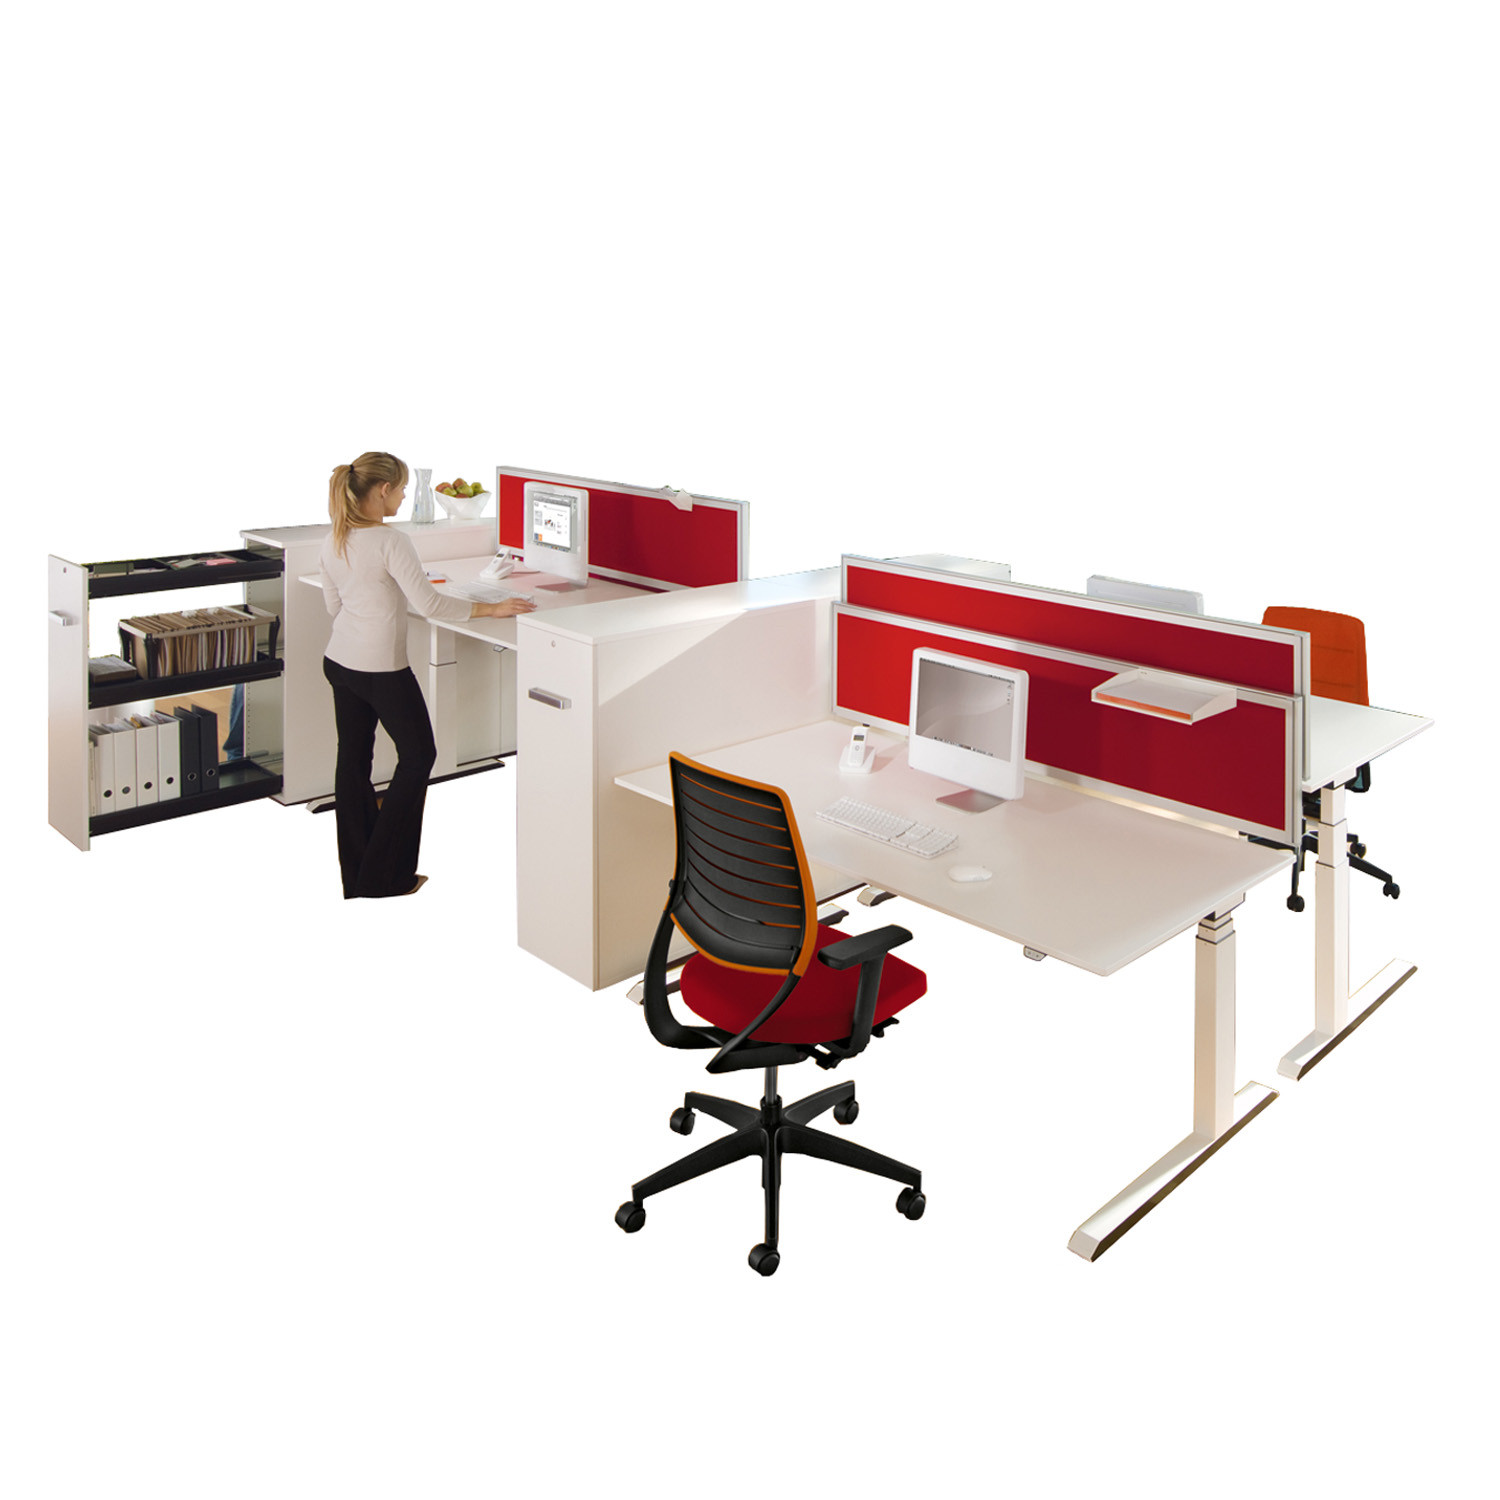 Temptation C Adjustable Desks